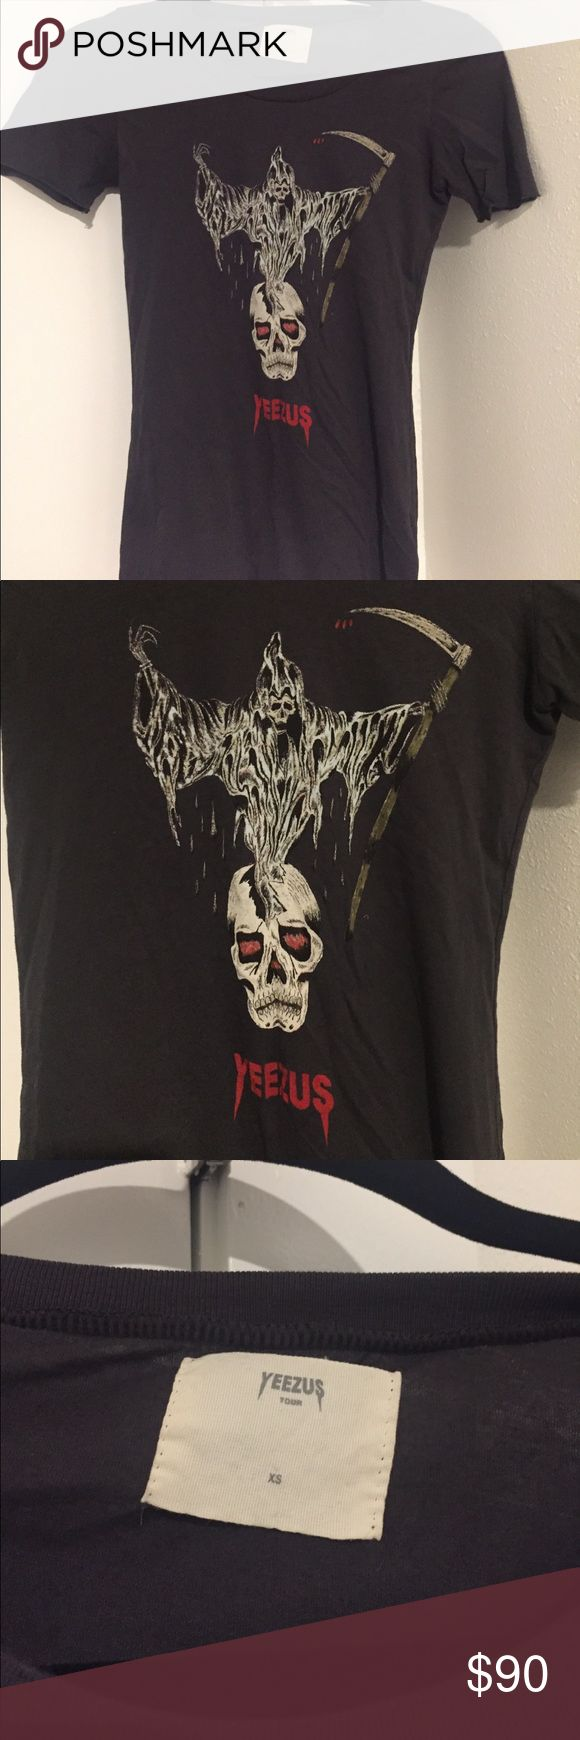 Authentic Kanye West Yeezus Merch Authentic women's kanye west merchandise from Yeezus tour, resale of any kanye west merch is usually atleast 150 per shirt, good condition Kanye West Merch Tops Tees - Short Sleeve